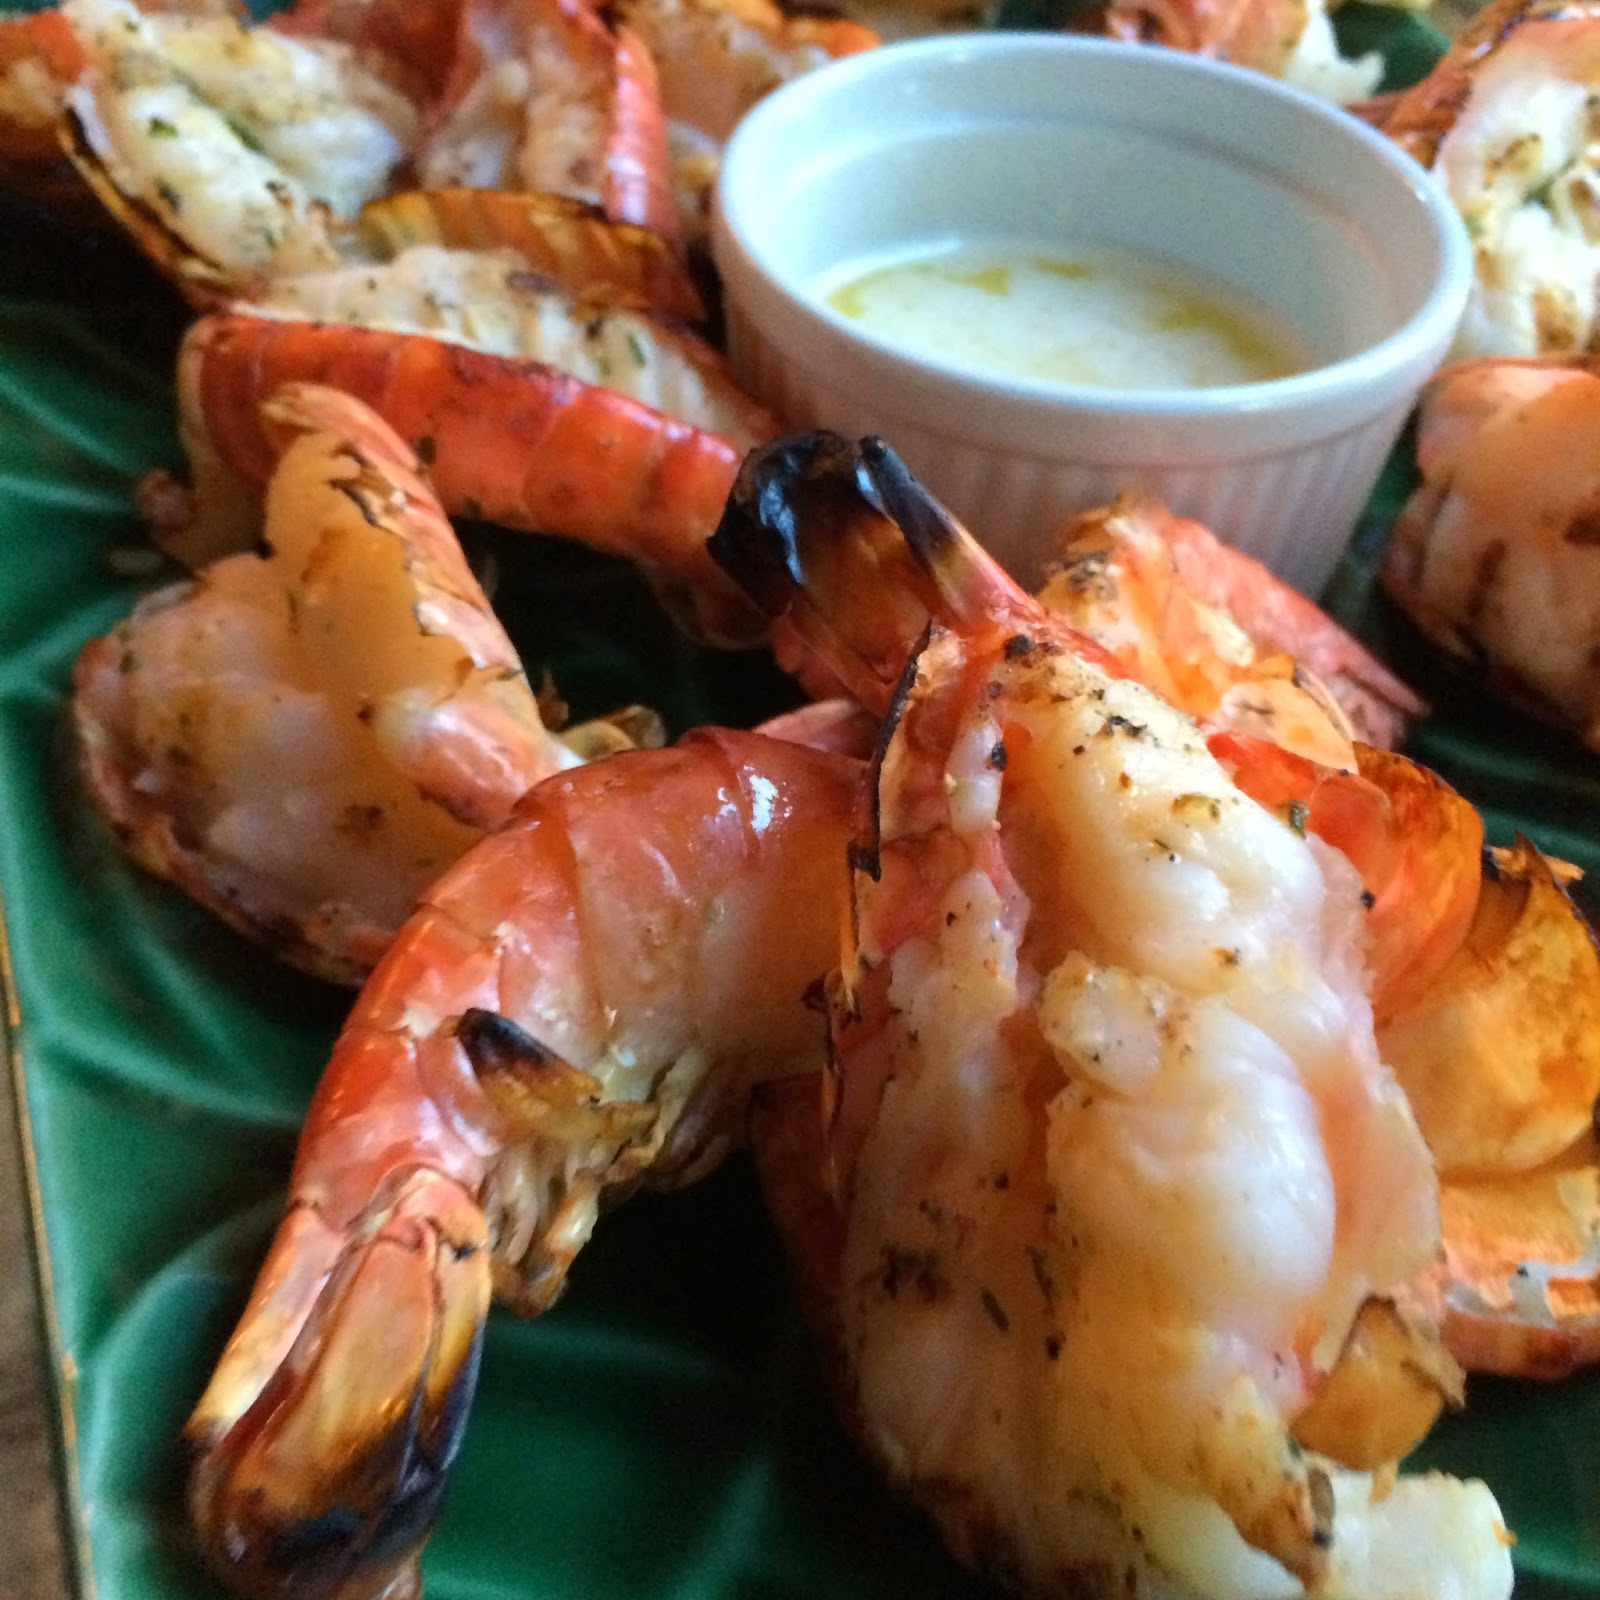 Food Impressions: Butterflied Grilled Shrimp With Garlic